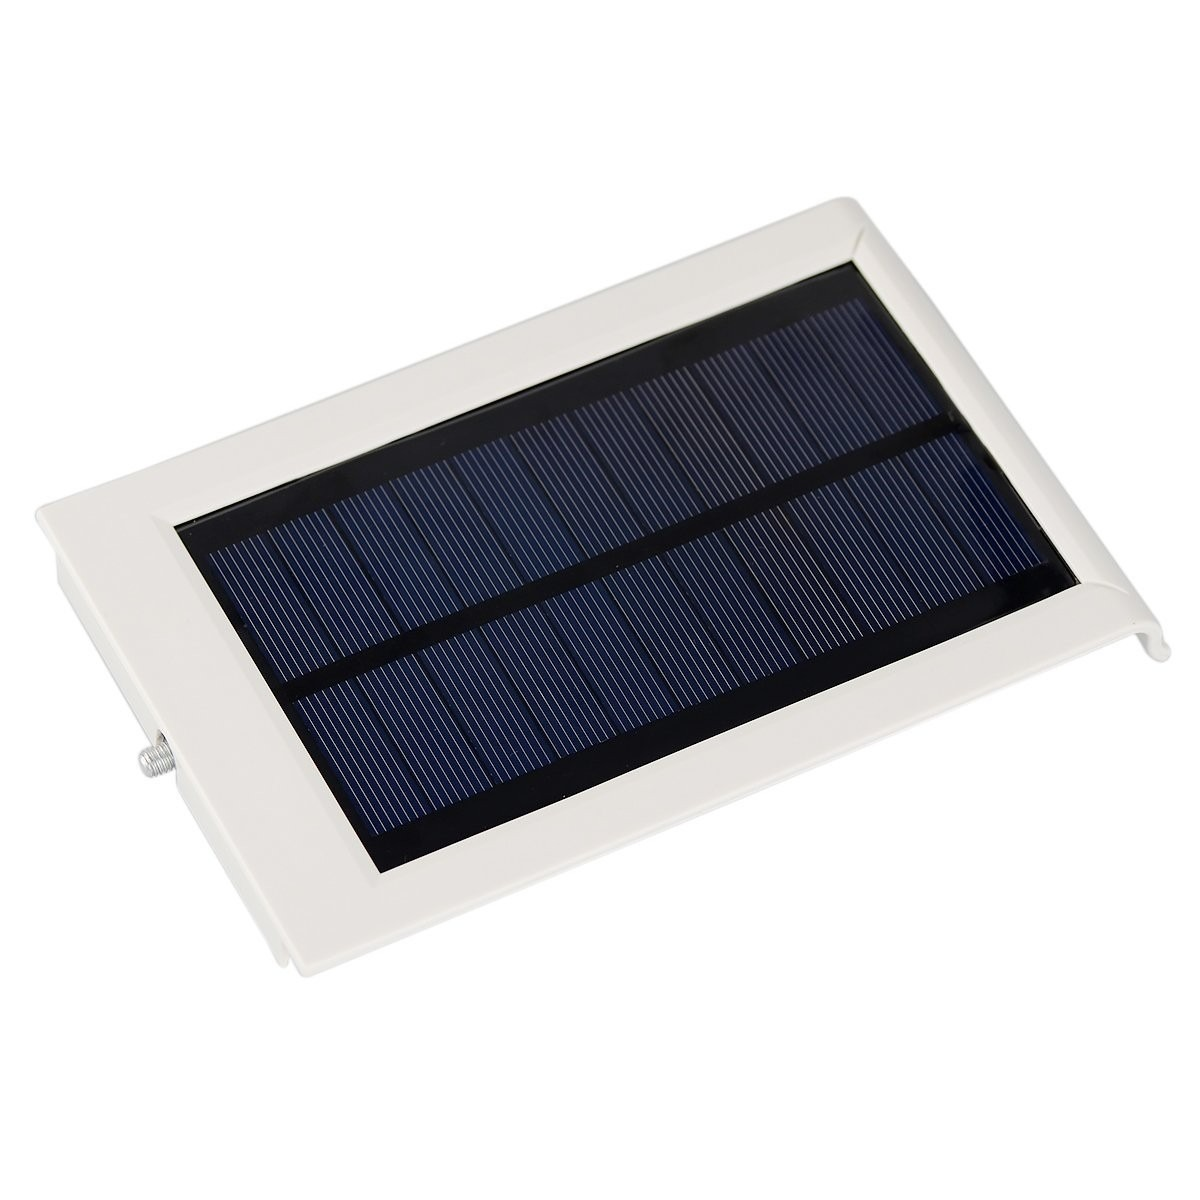 L mpara solar de 12 super leds luminaria led solar for Lampara solar led